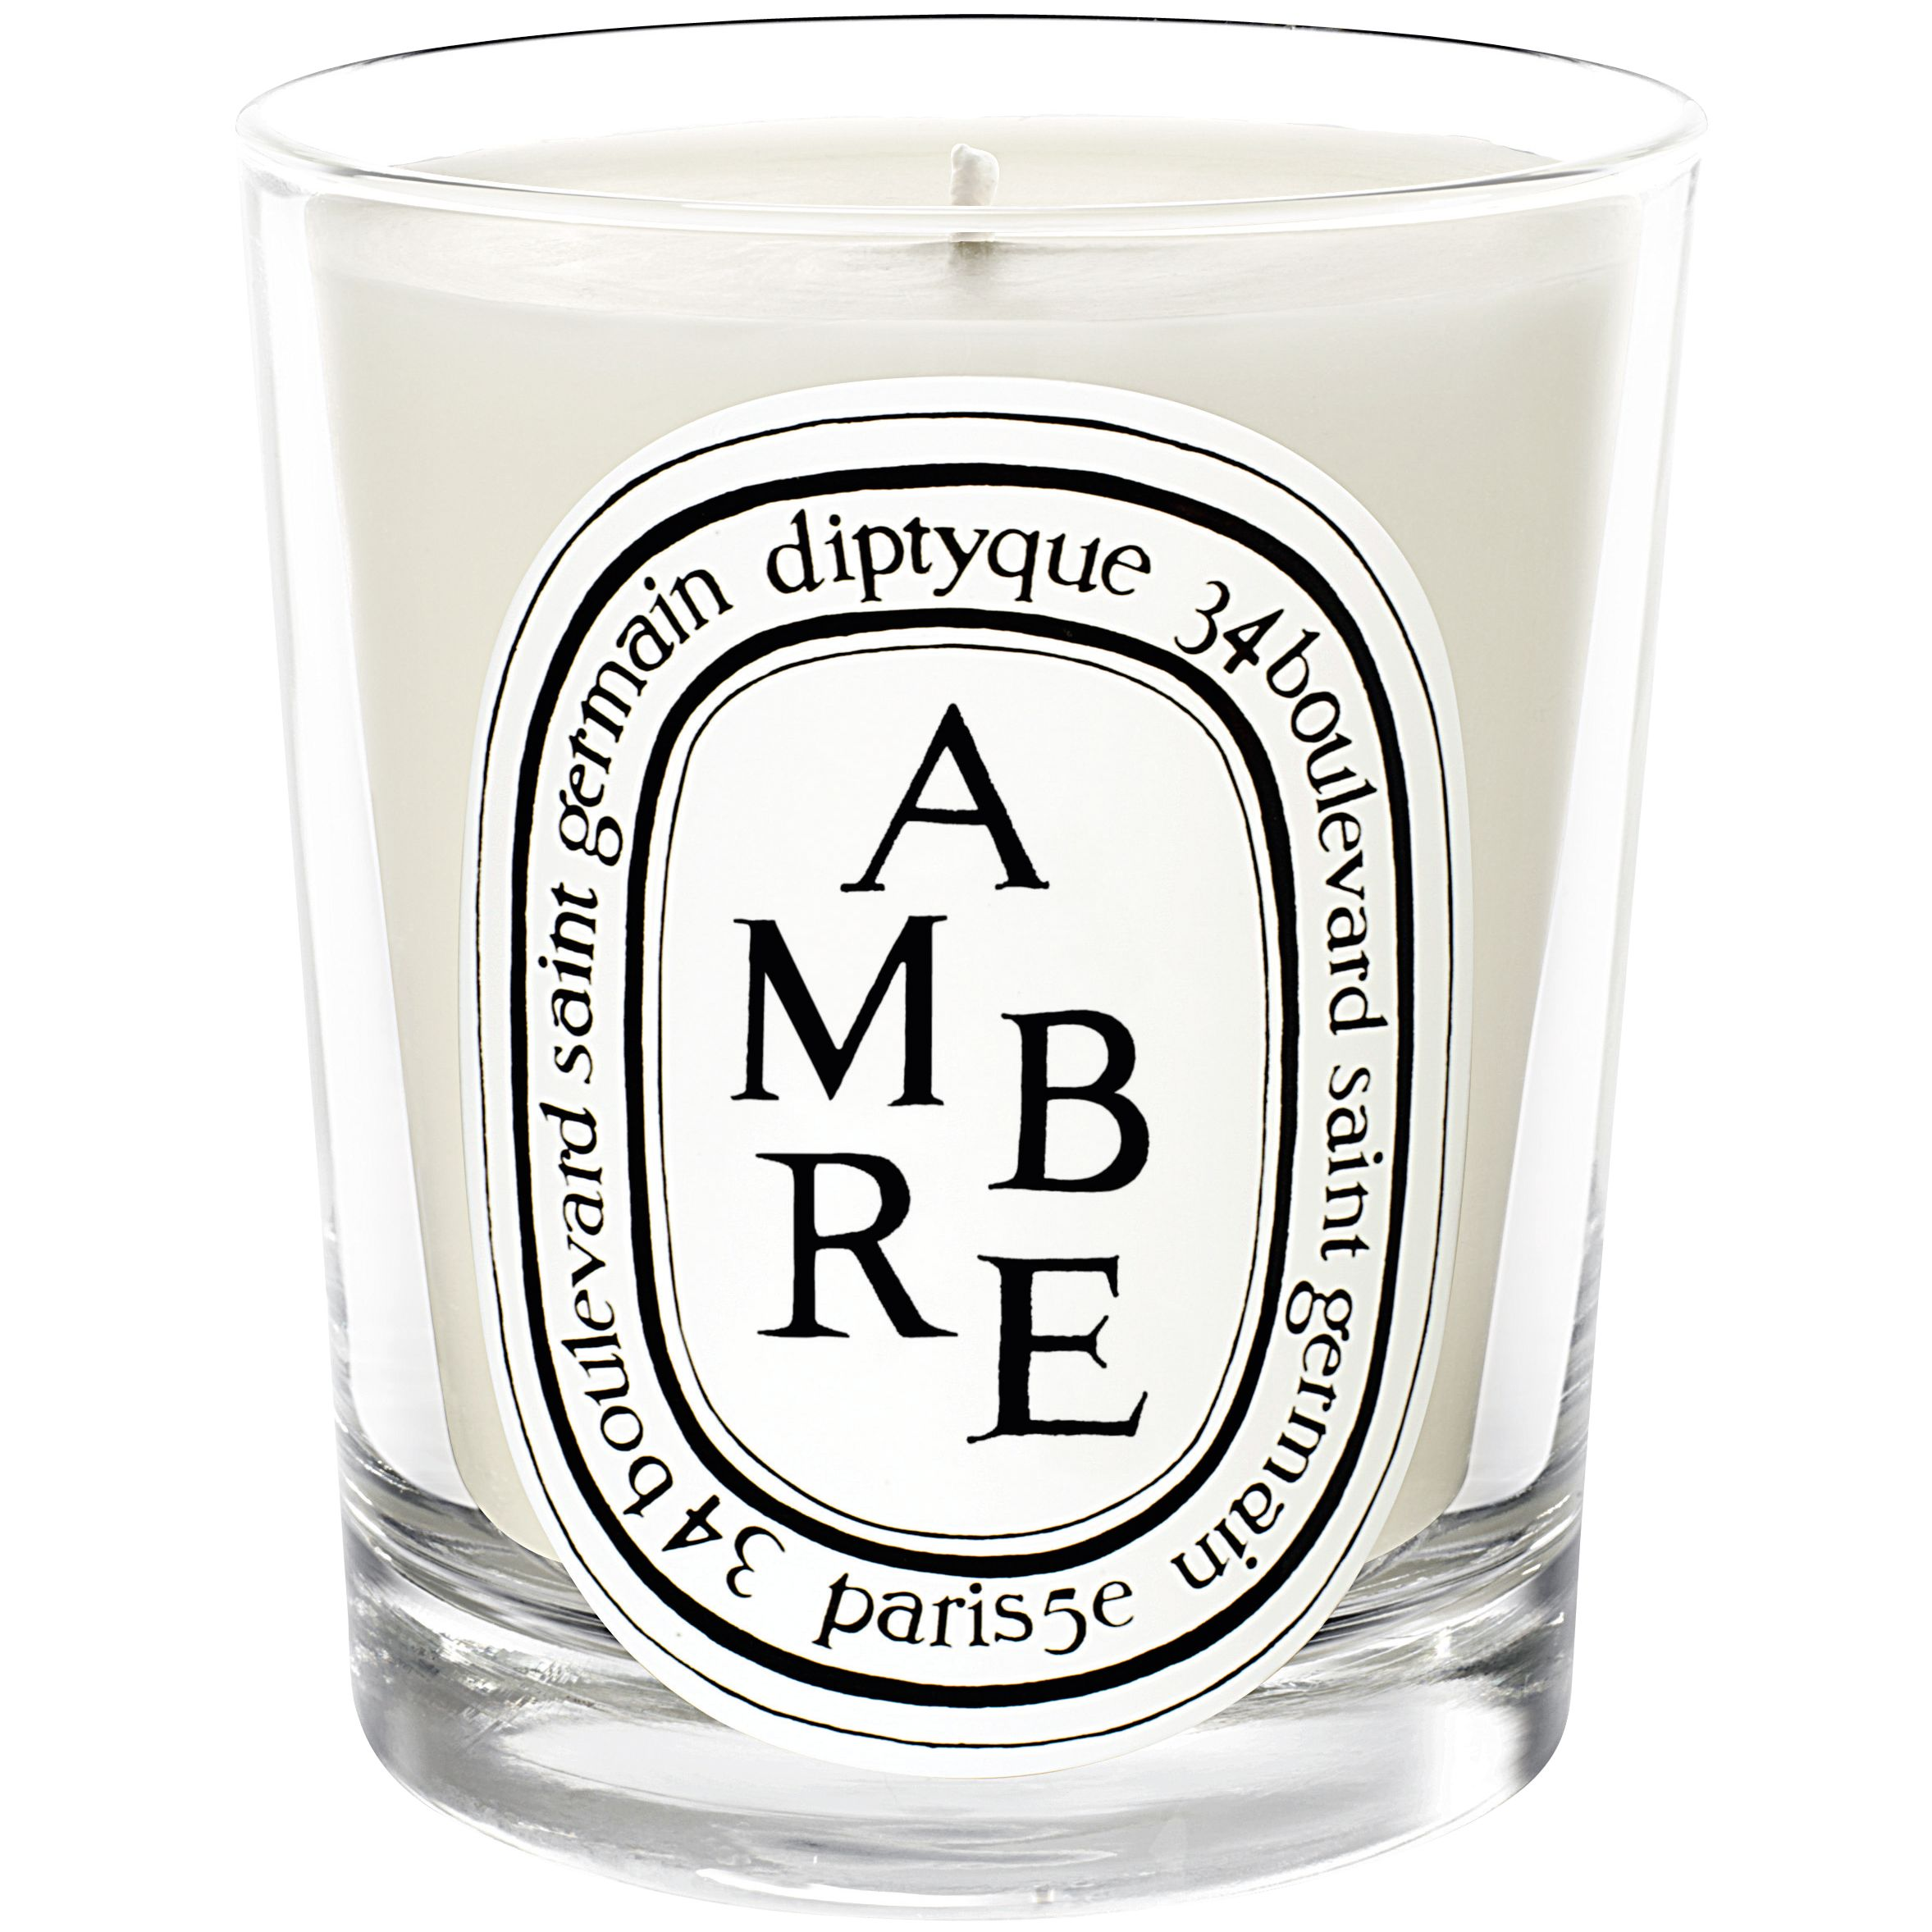 Diptyque Diptyque Ambre Scented Candle, 190g